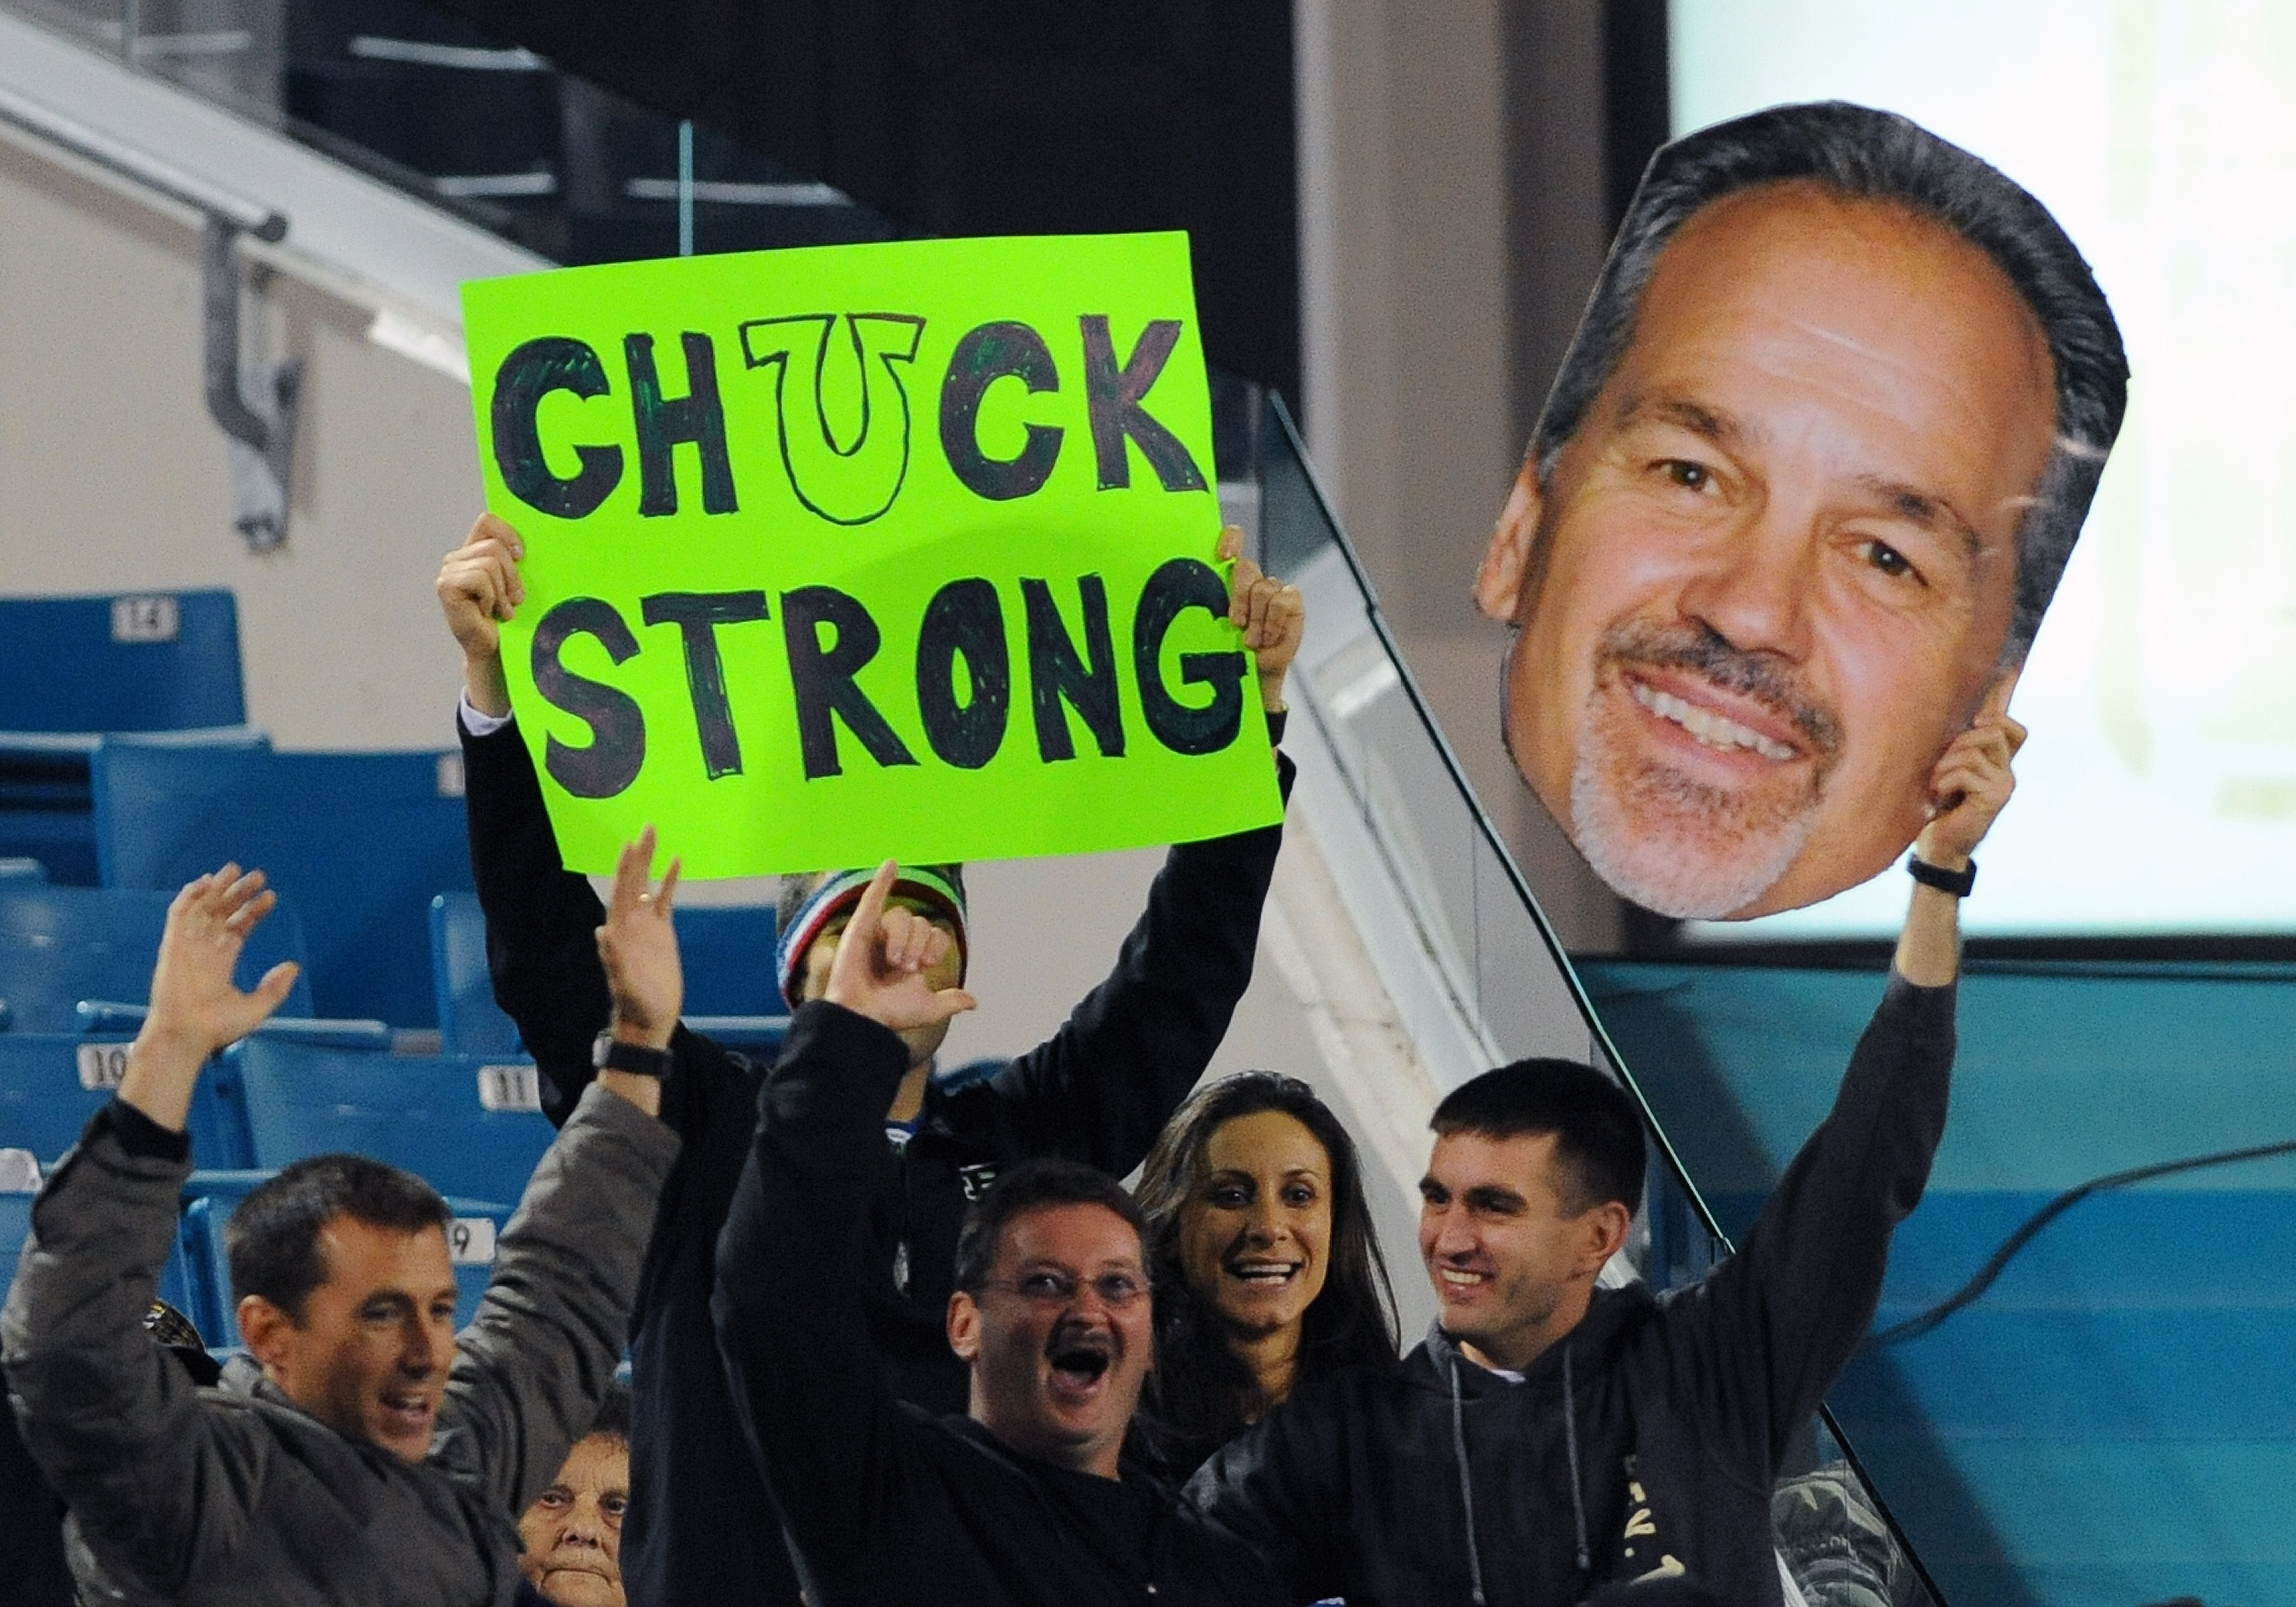 Fans of the Colts show signs supporting coach Chuck Pagano during a game against the Jaguars. (Getty Images)